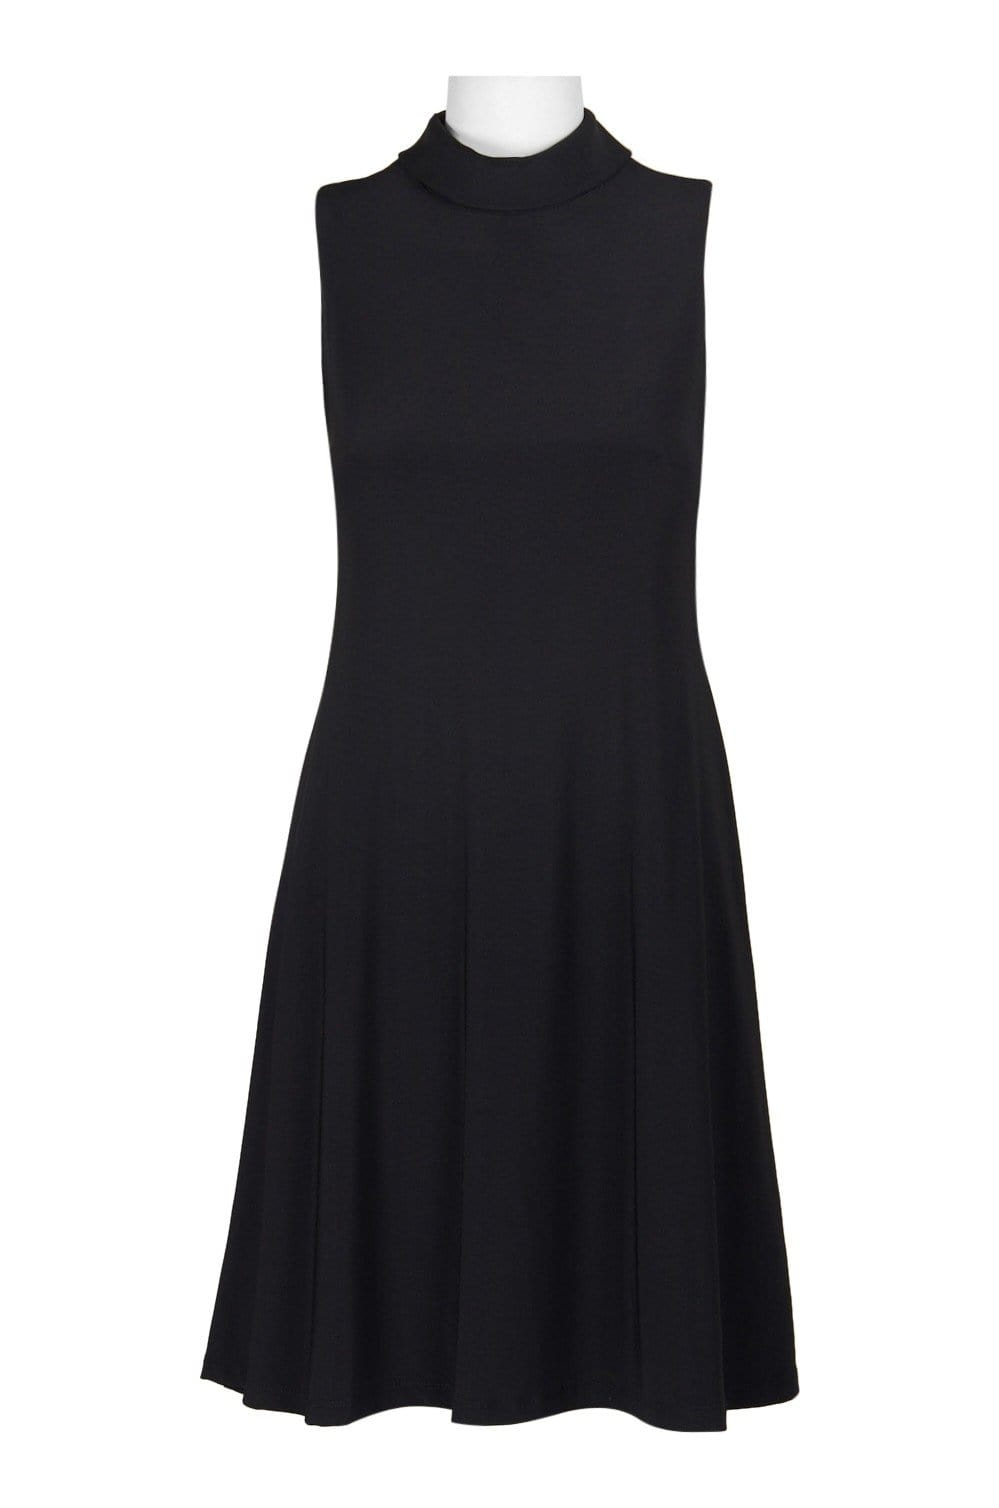 Taylor - 9256M Turtle Neck Cutout Back A-Line Dress In Black